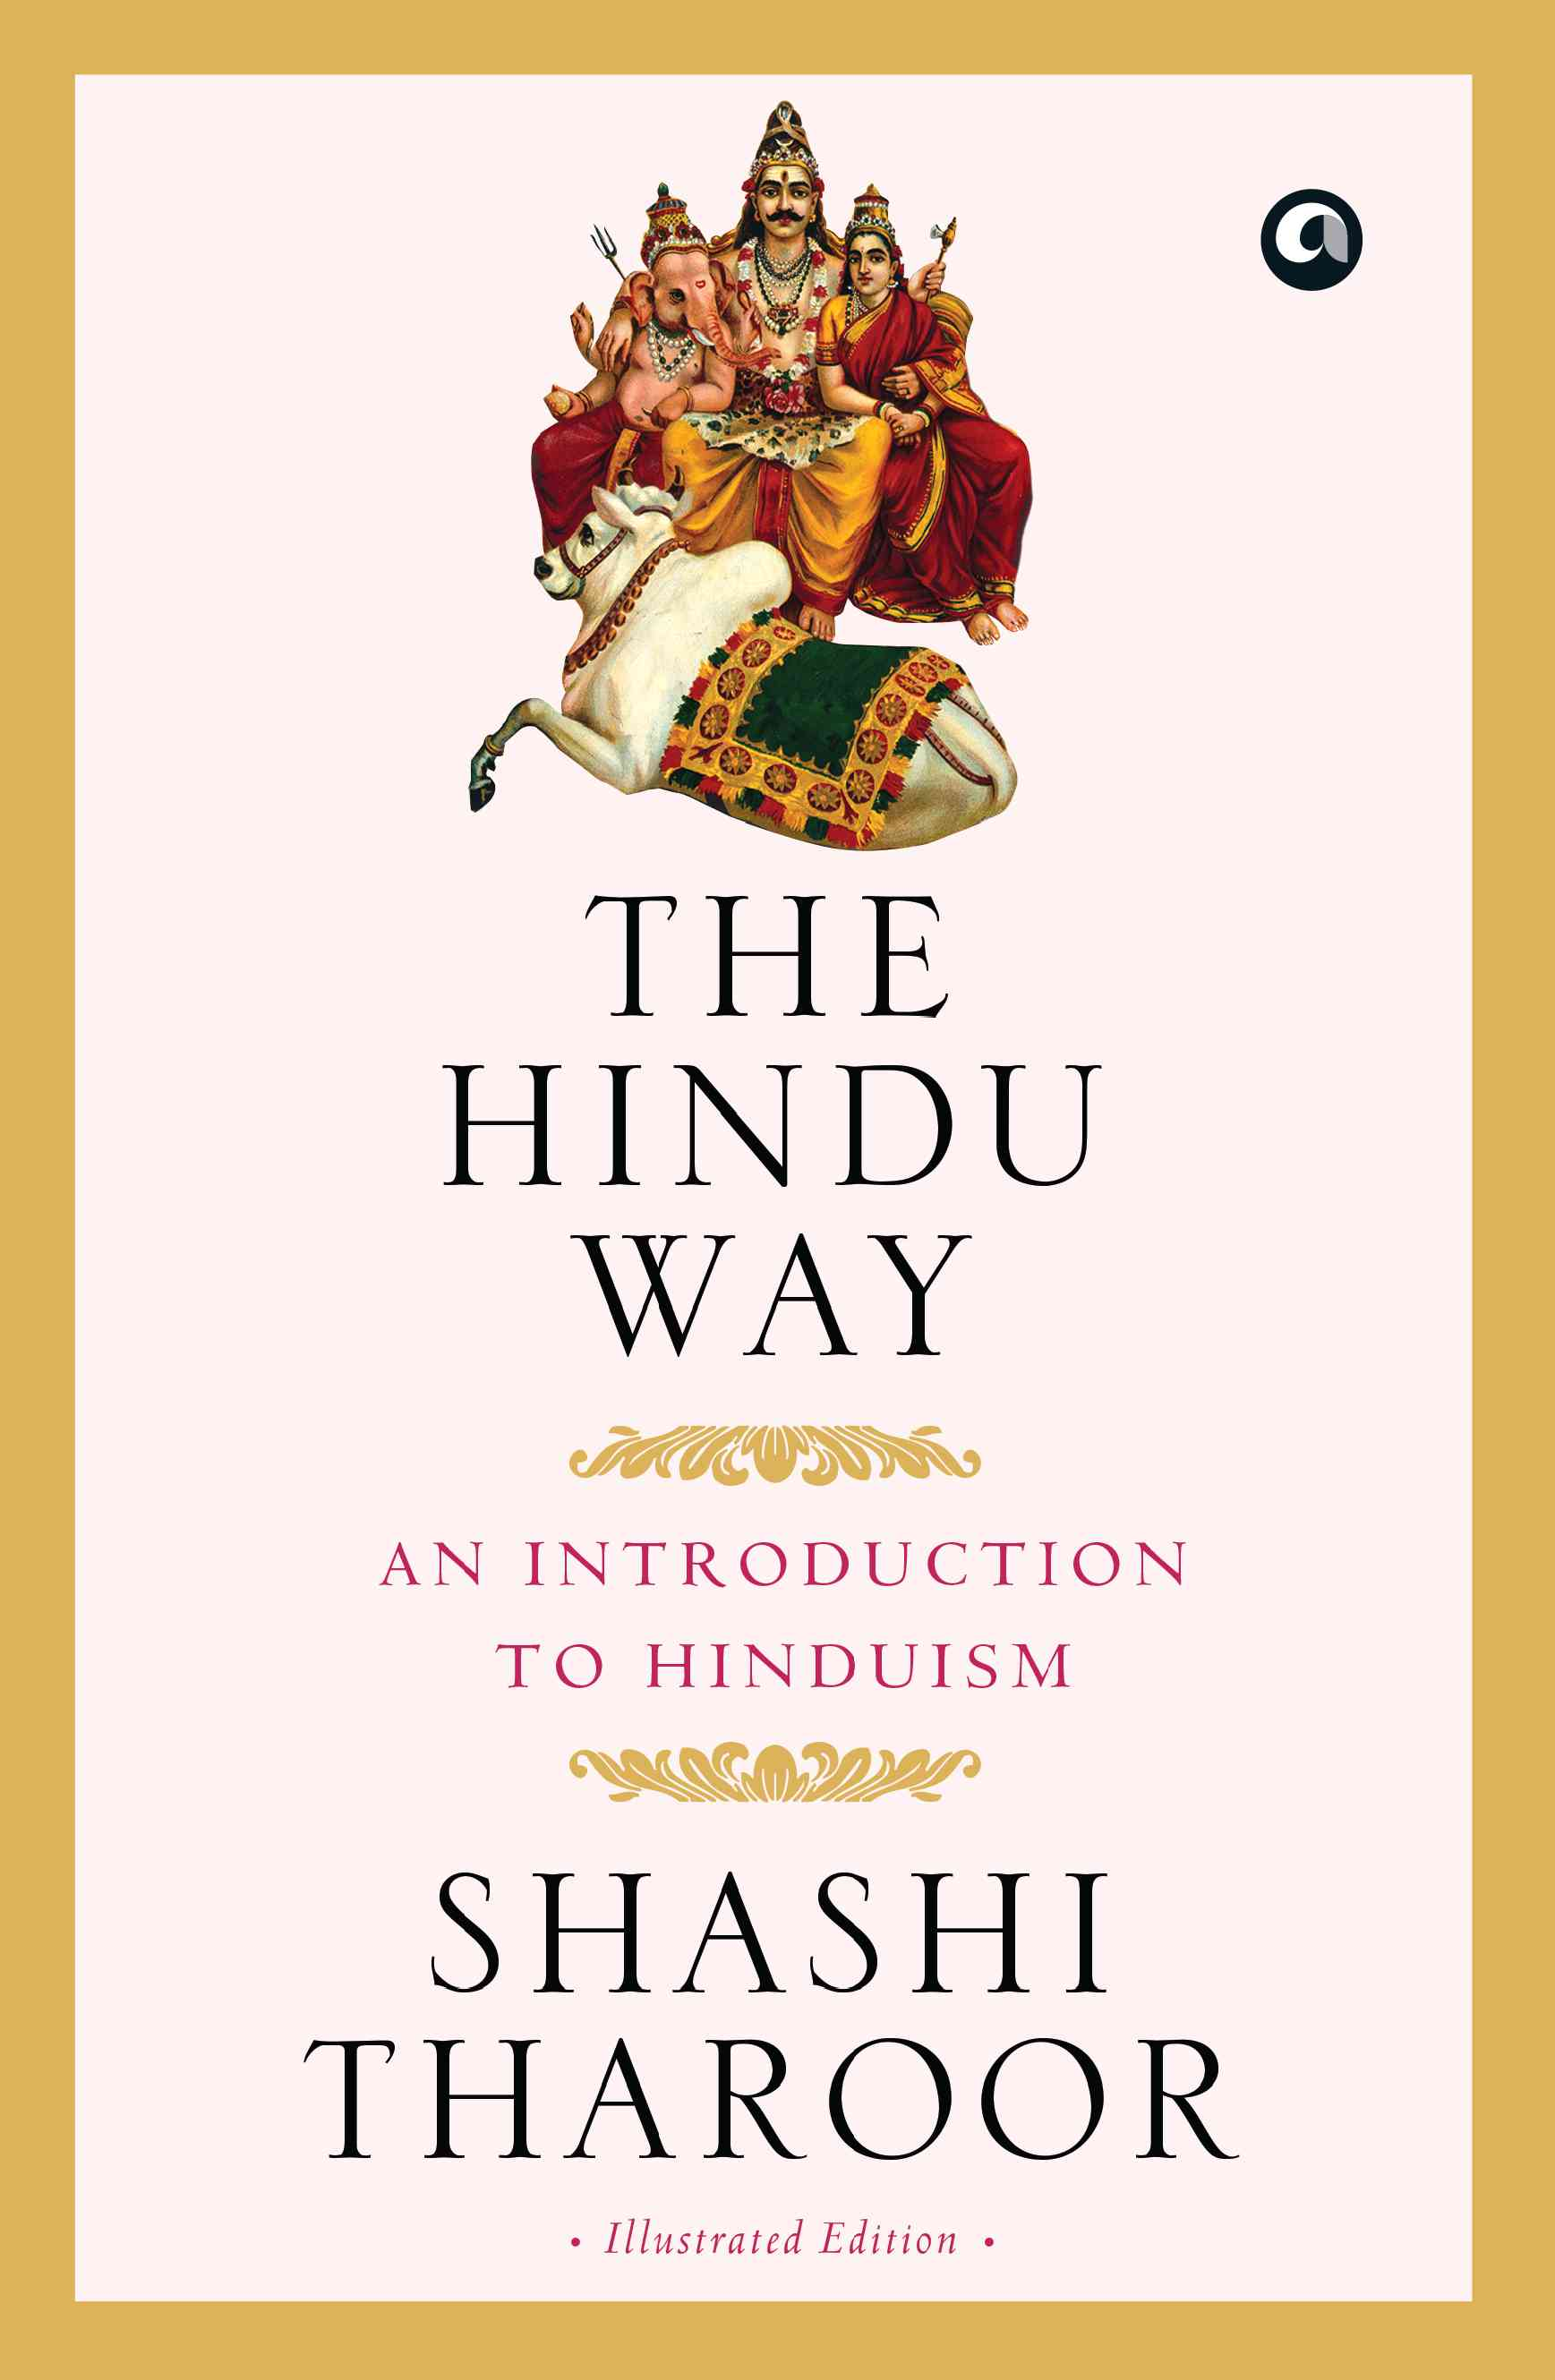 The Hindu Way': Shashi Tharoor's new book reveals whether he